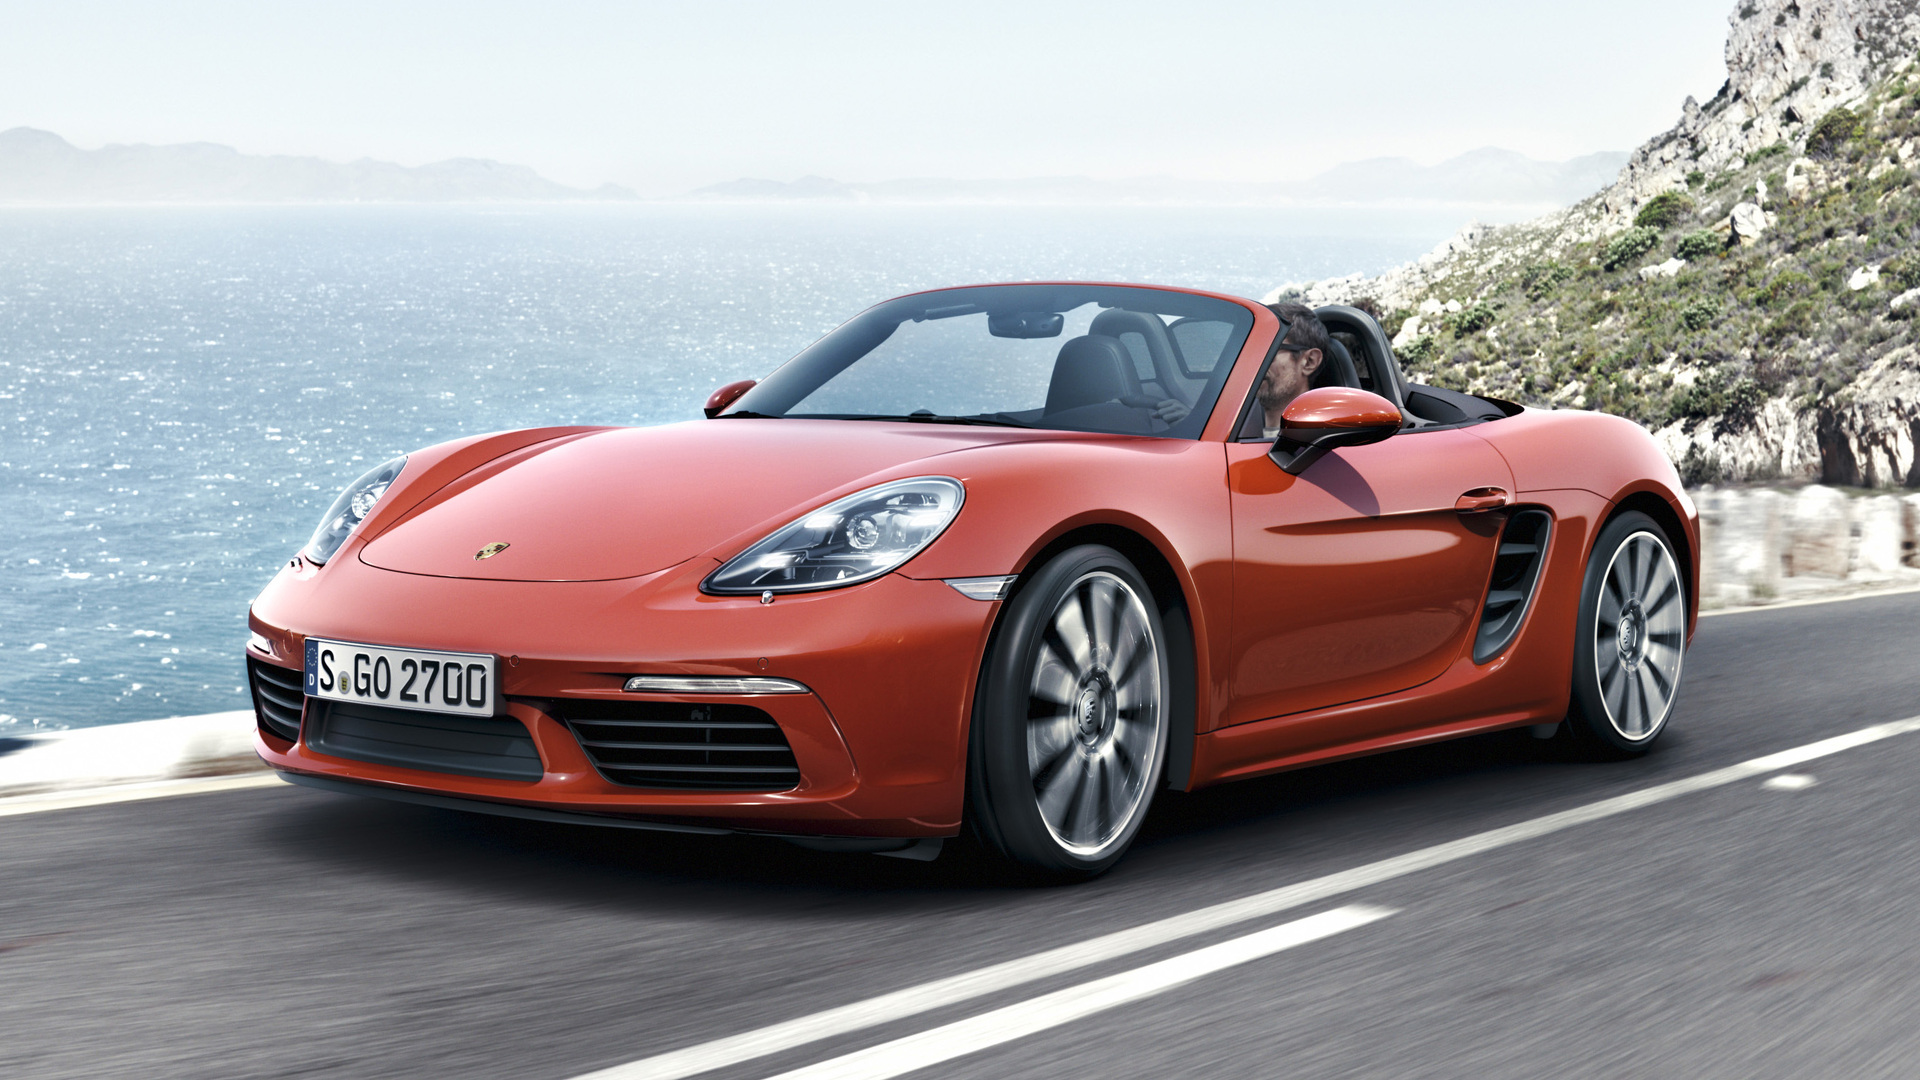 The Best Convertibles For Tall People - Sports cars for tall guys